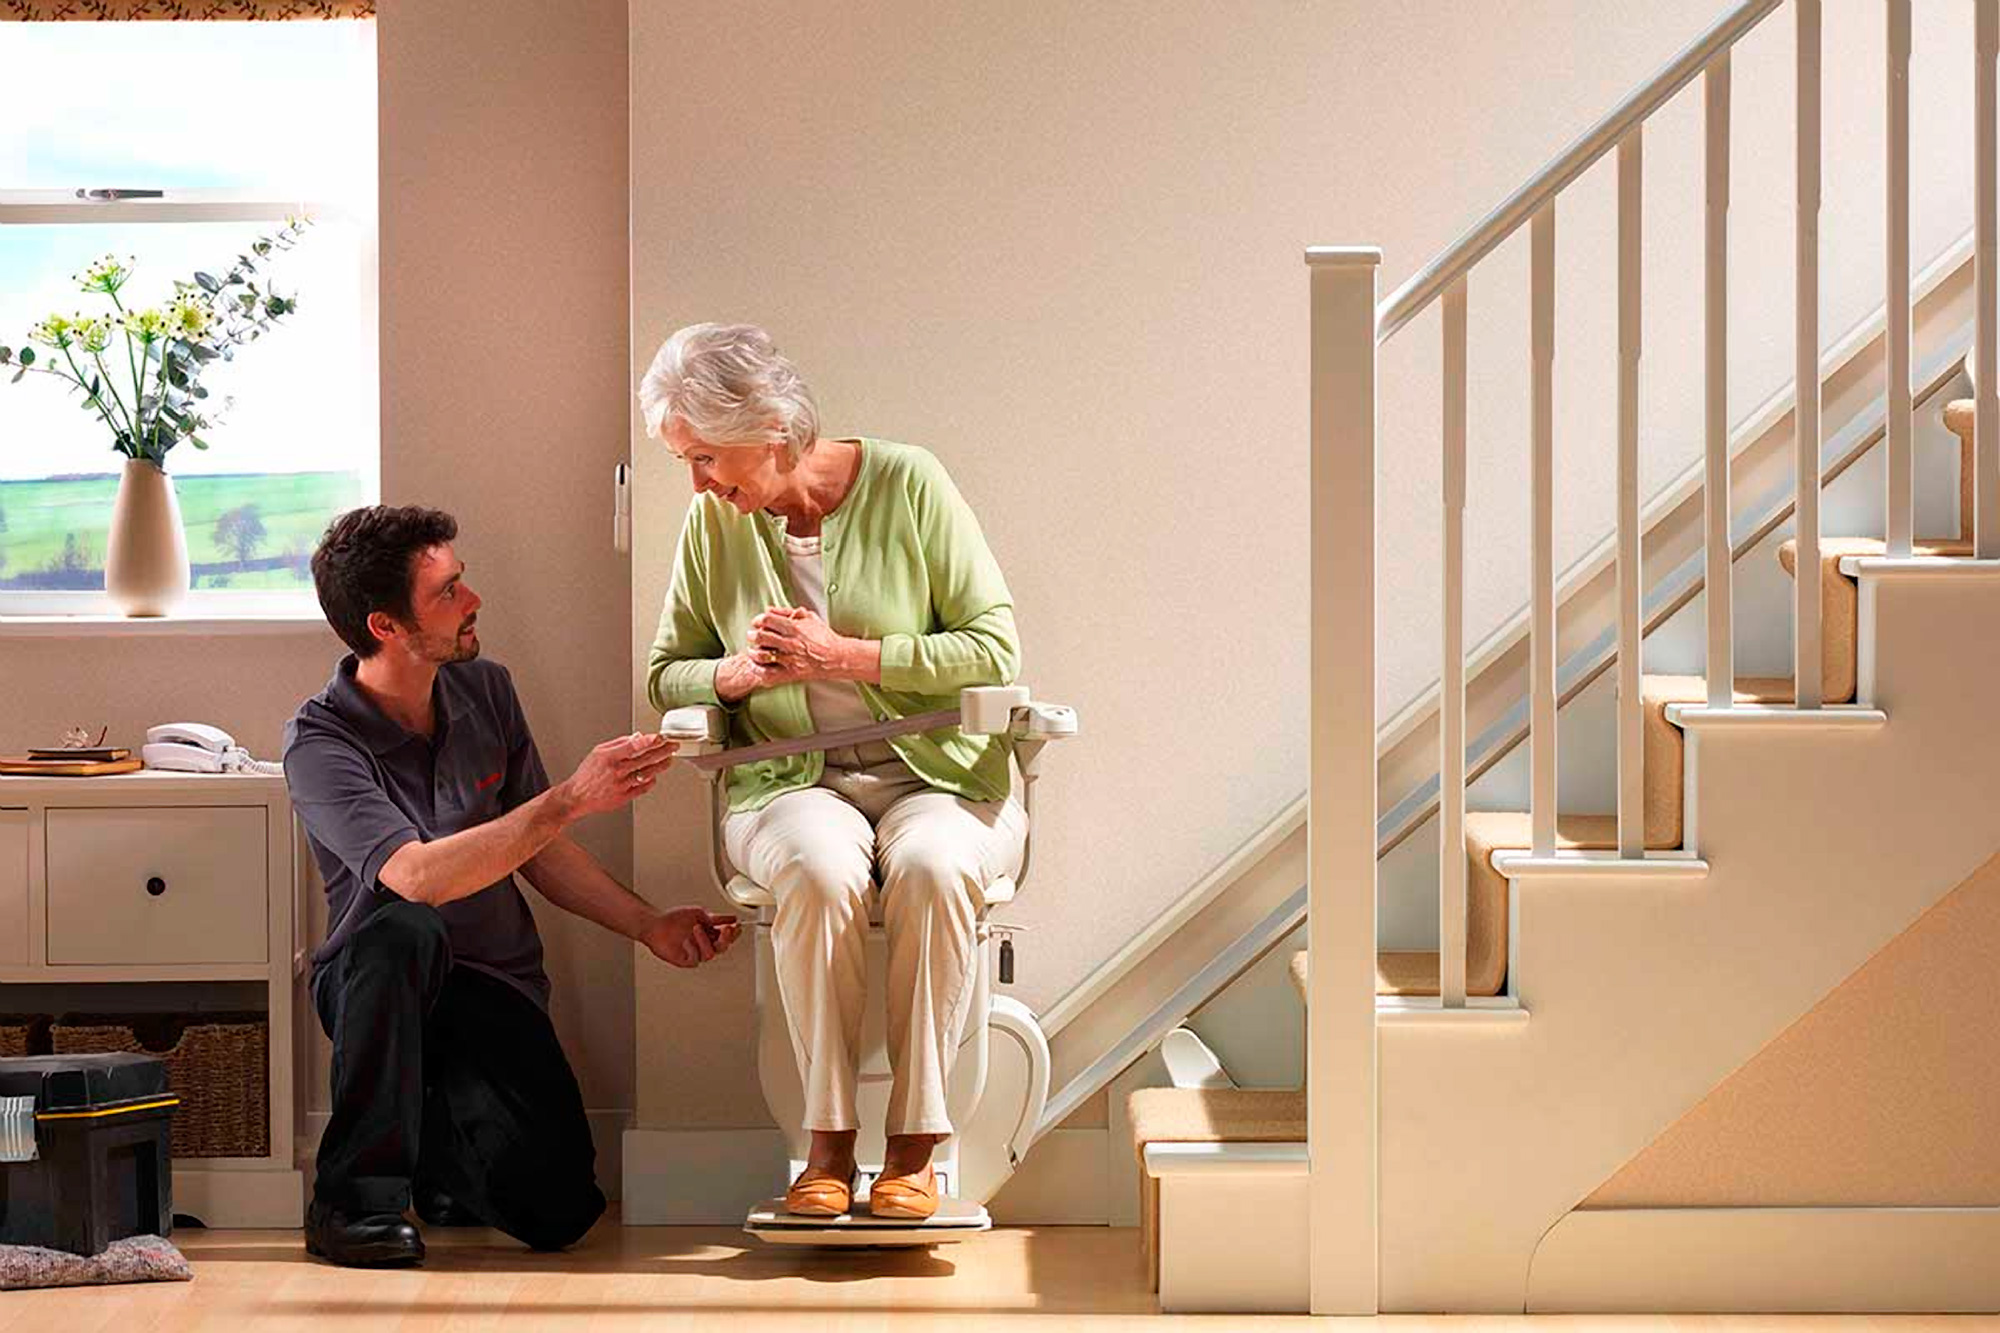 lady-on-stairlift-banner.jpg